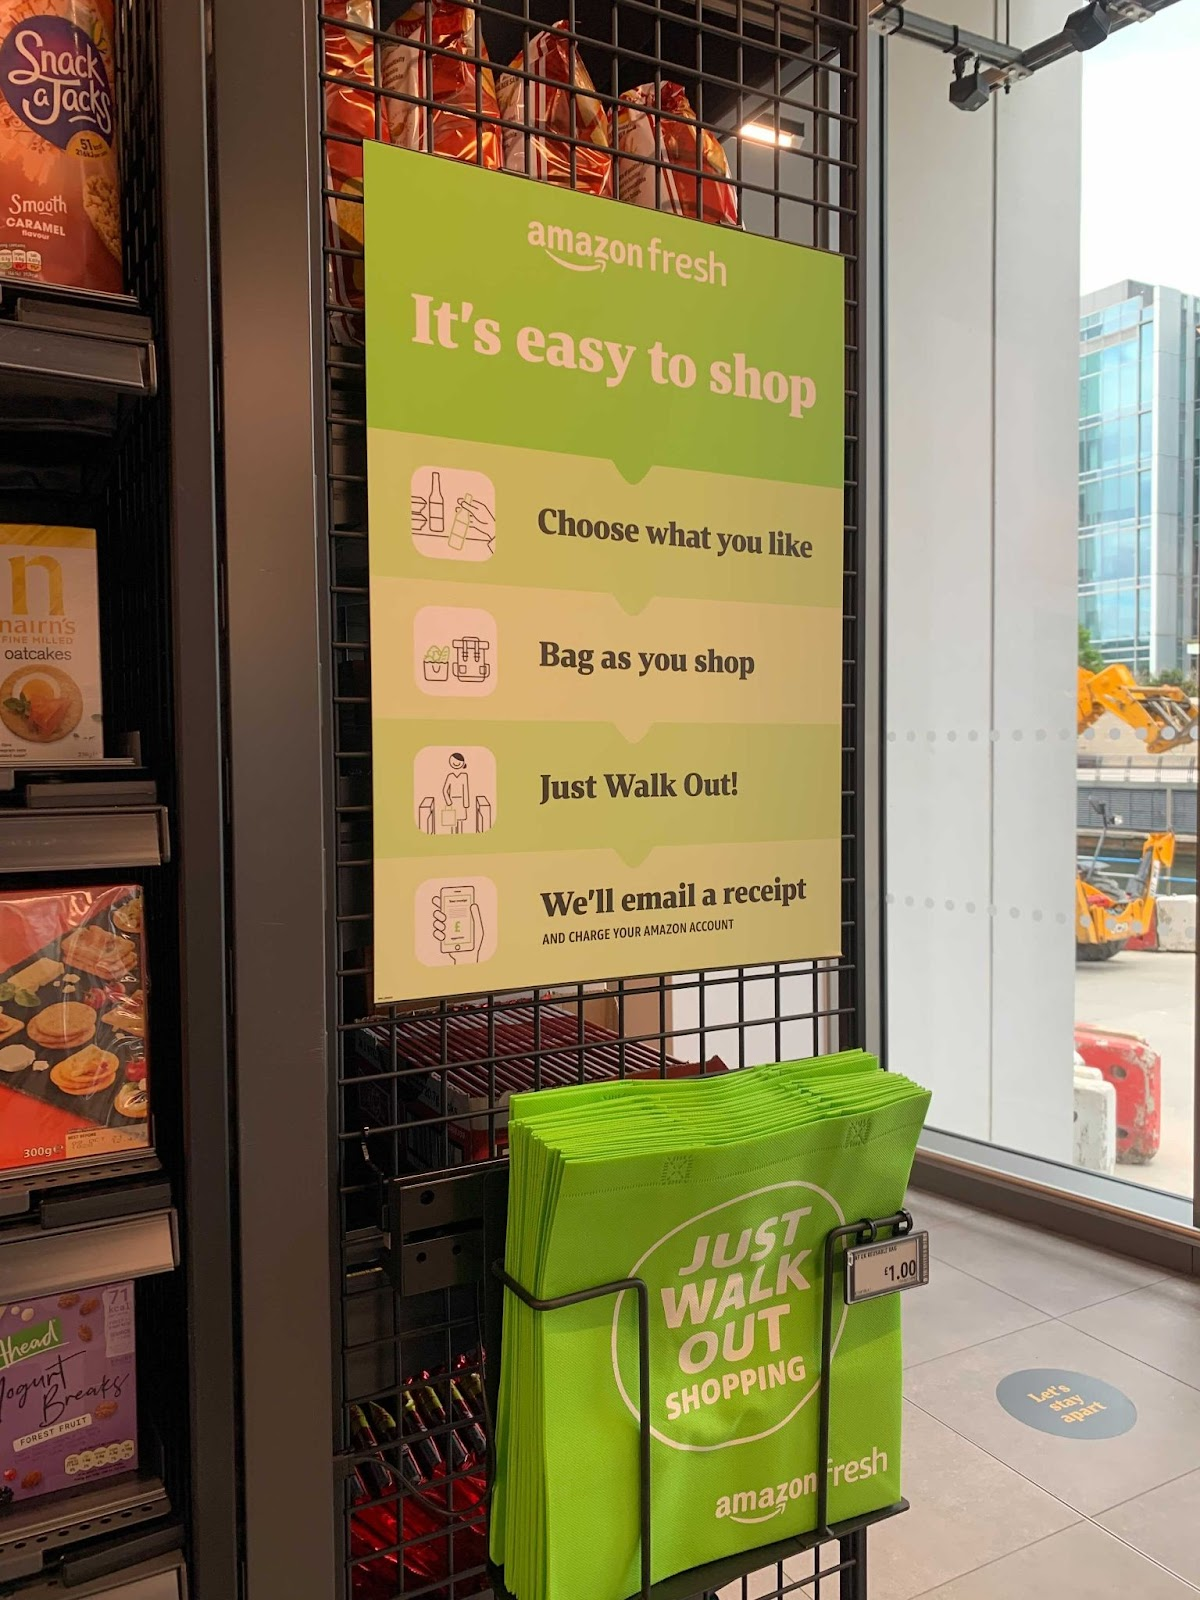 """The """"Just Walk Out"""" shopping explained through a banner in the Amazon Fresh store in London"""